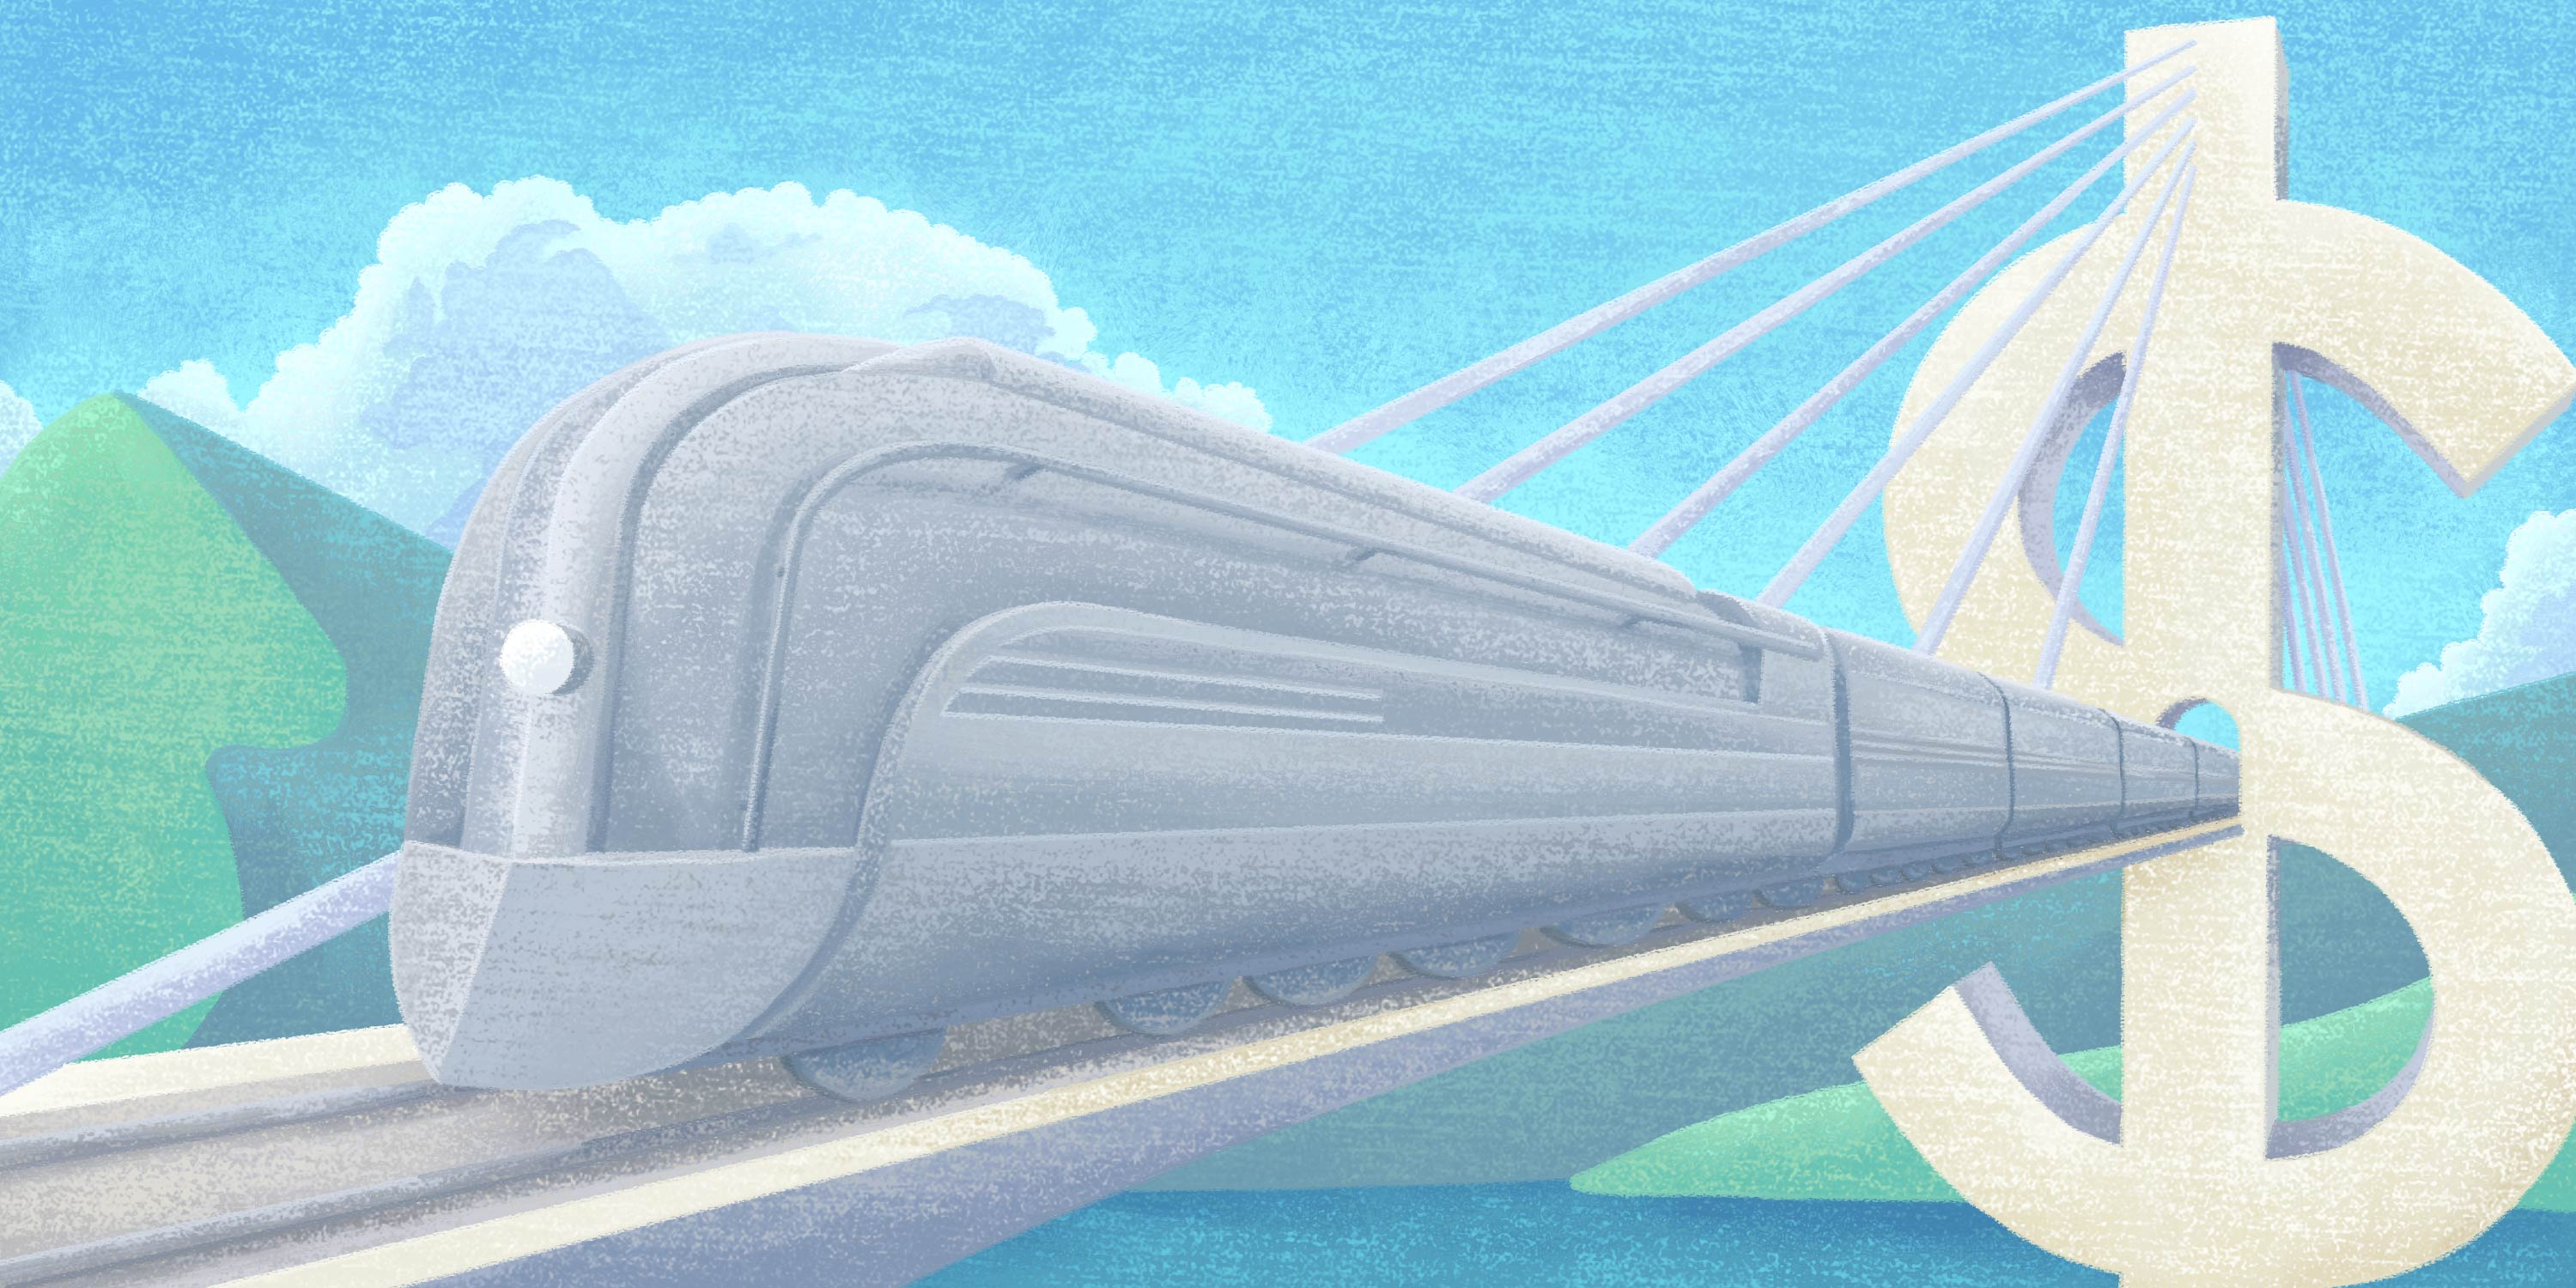 high-speed train depicts streamlined efficiencies and associated cost savings